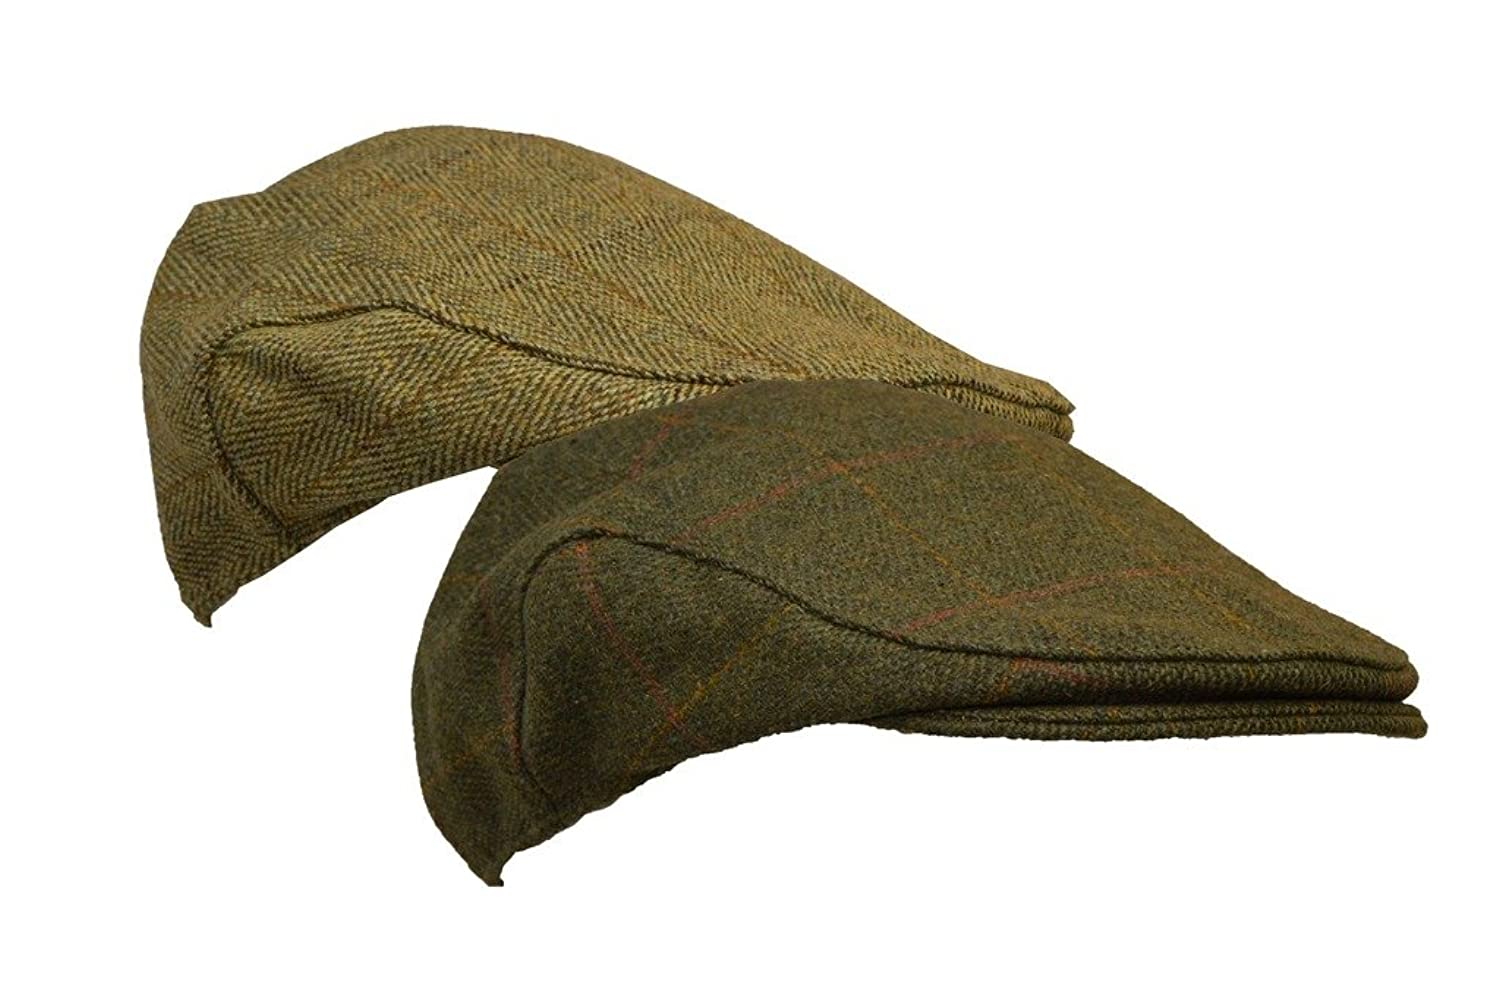 1950s Men's Hats Styles Guide Derby Tweed Flat Cap Hunting Shooting Countrywear Hat $22.02 AT vintagedancer.com